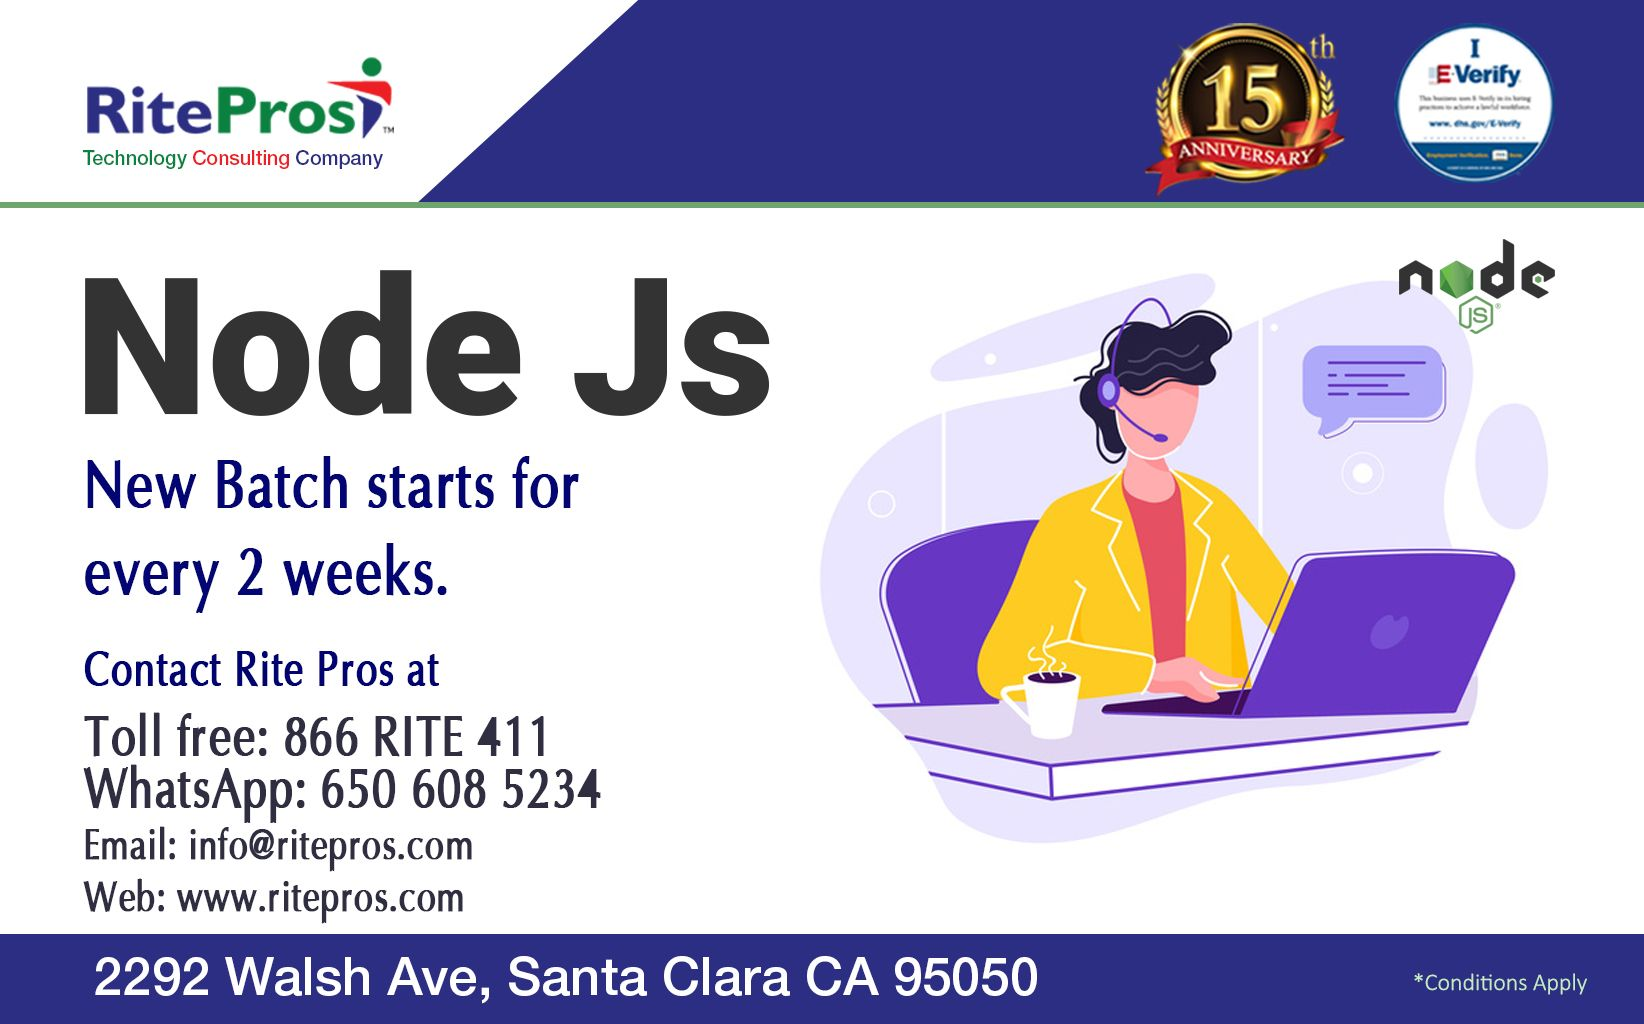 Nodejs Batch Starts Every 2 Weeks Corporate Training Technology Consulting Software Development